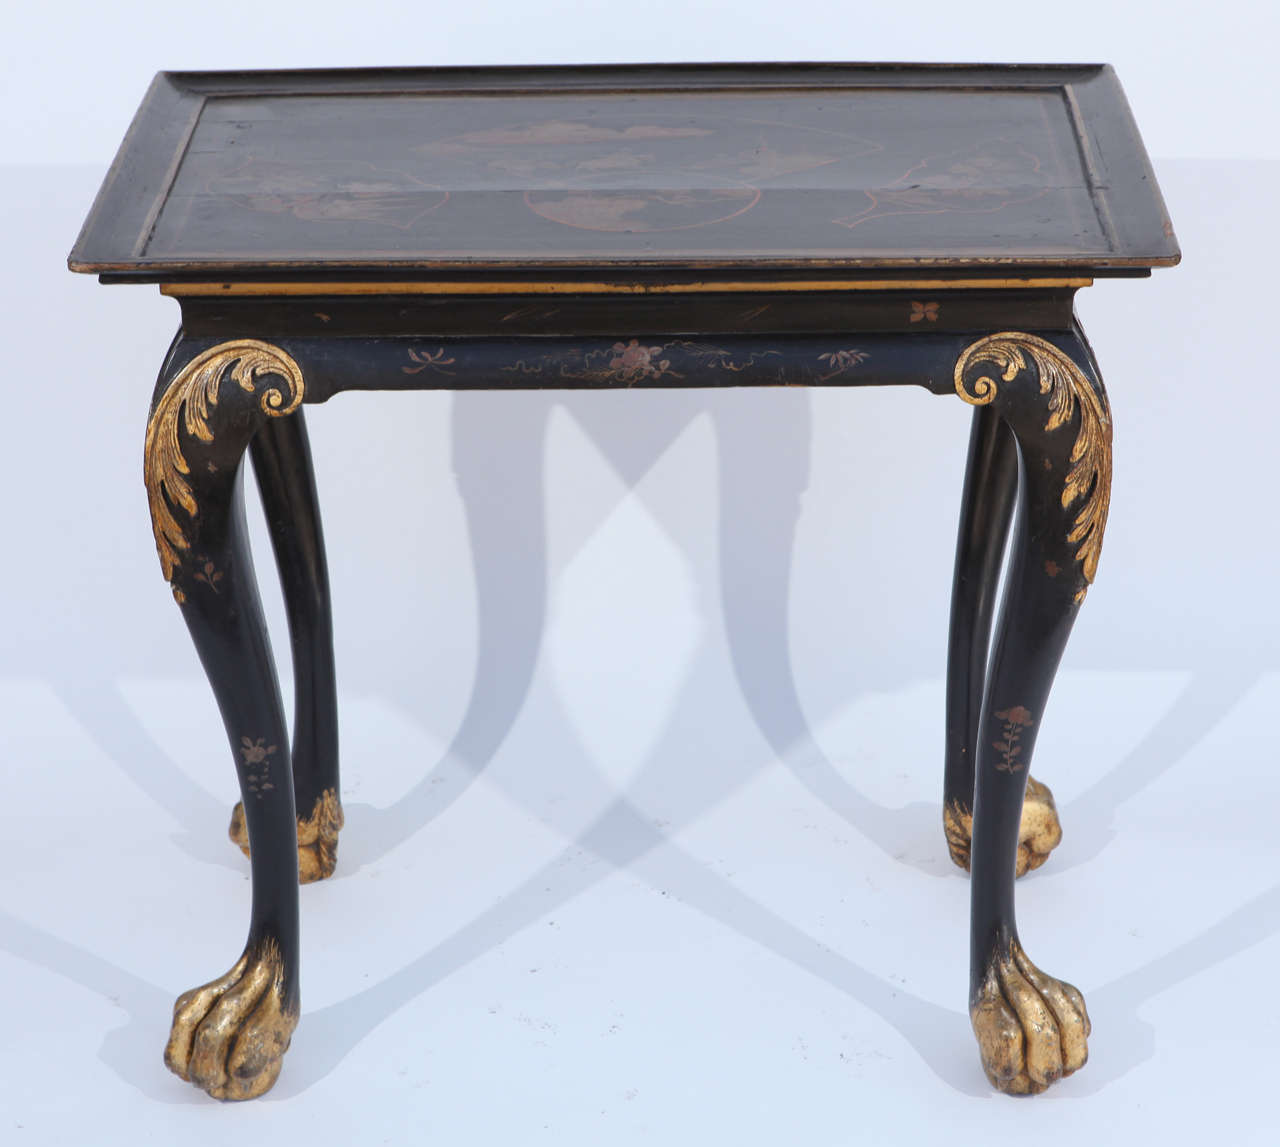 19th century English Chinoiserie Hardwood Table with Paw Feet and Gilt Details